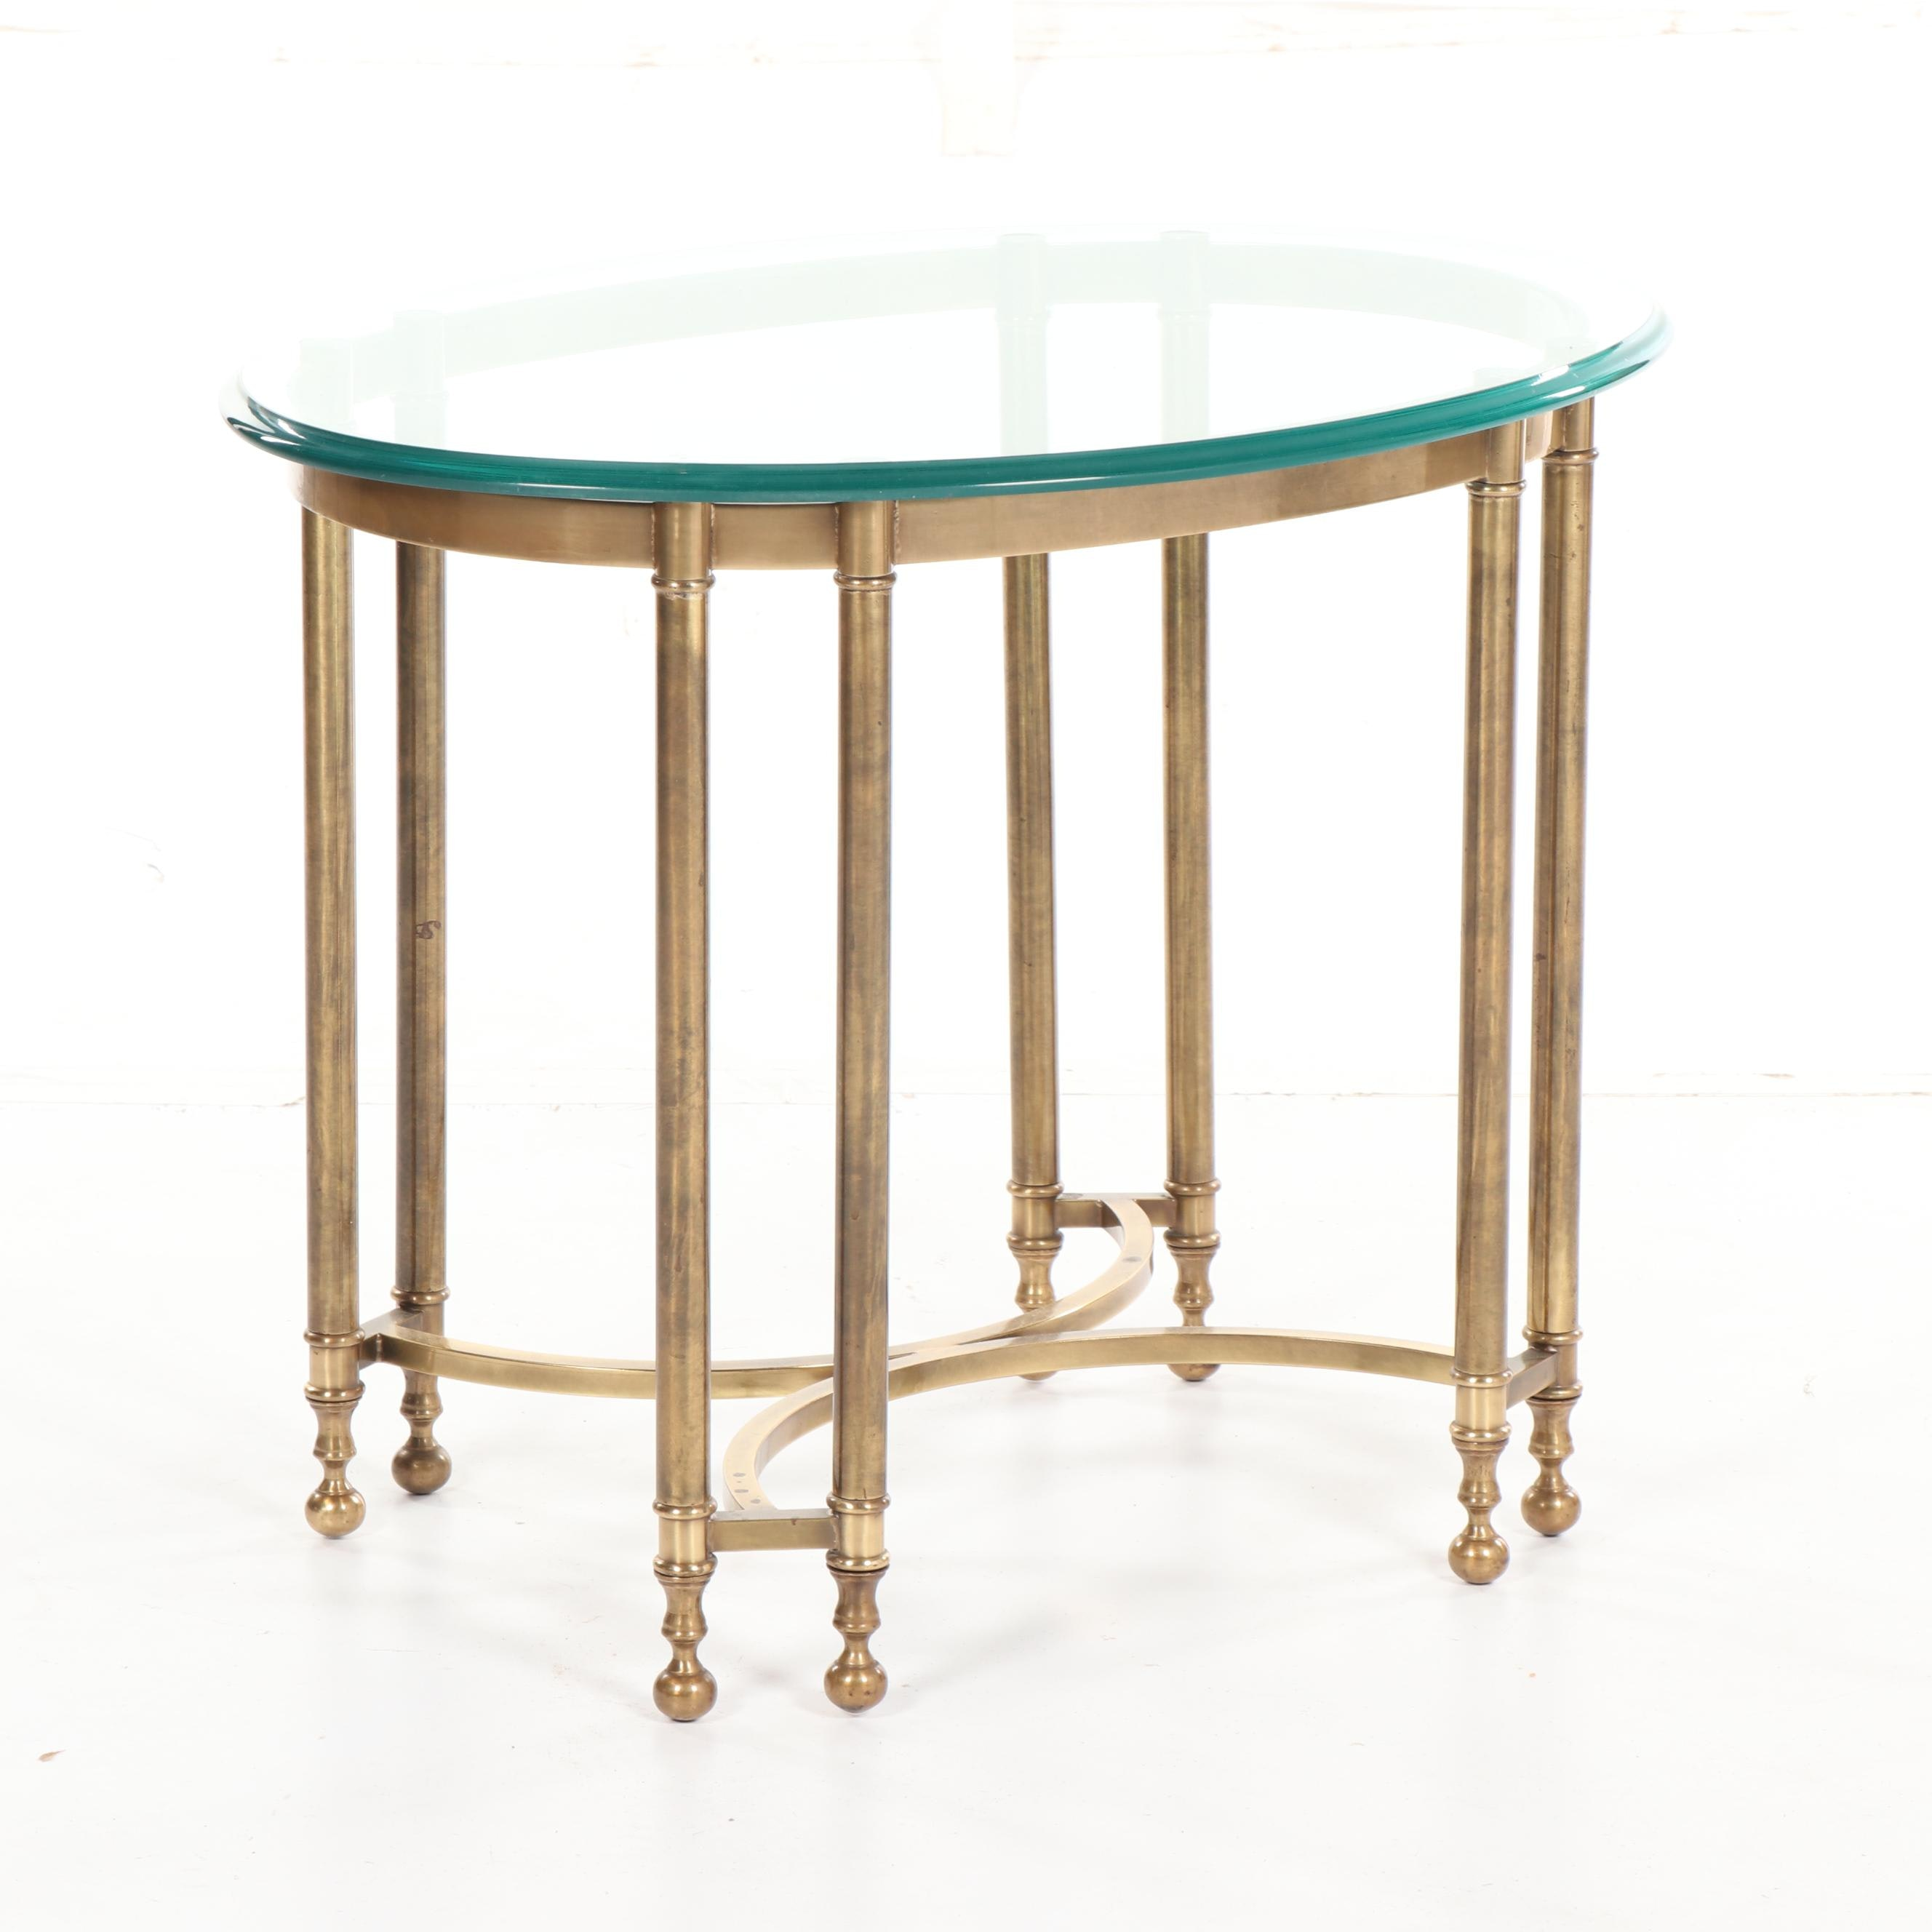 Brass and Glass End Table, 20th Century